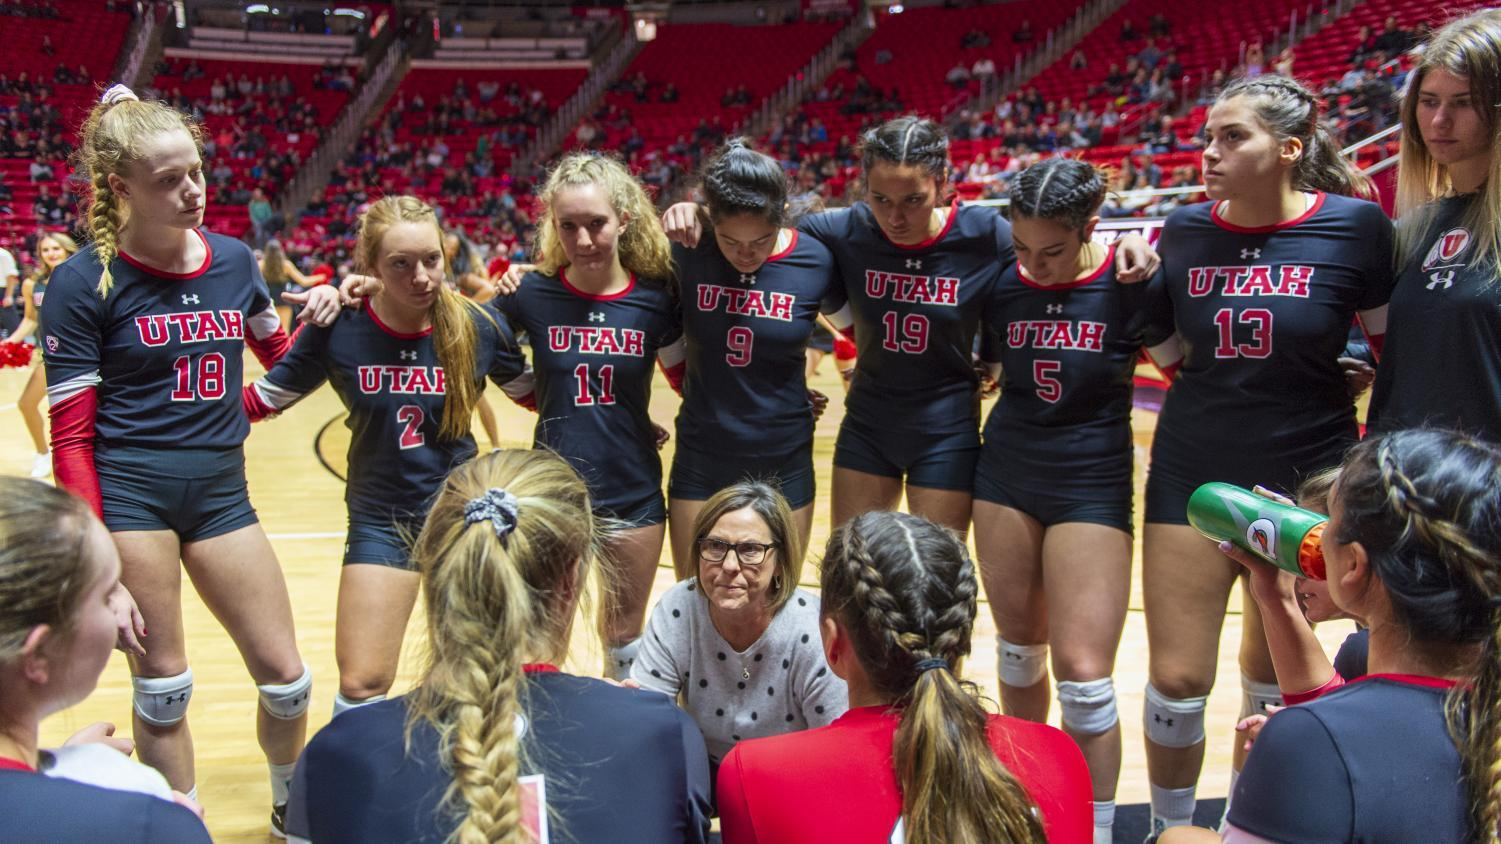 The University of Utah women's volleyball team takes a timeout while head coach Beth Launiere discusses strategy during an NCAA Volleyball match vs. The Colorado Buffalos at the Jon M. Huntsman Center in Salt Lake City, Utah on Friday, Nov. 23, 2018. (Photo by Kiffer Creveling   The Daily Utah Chronicle)